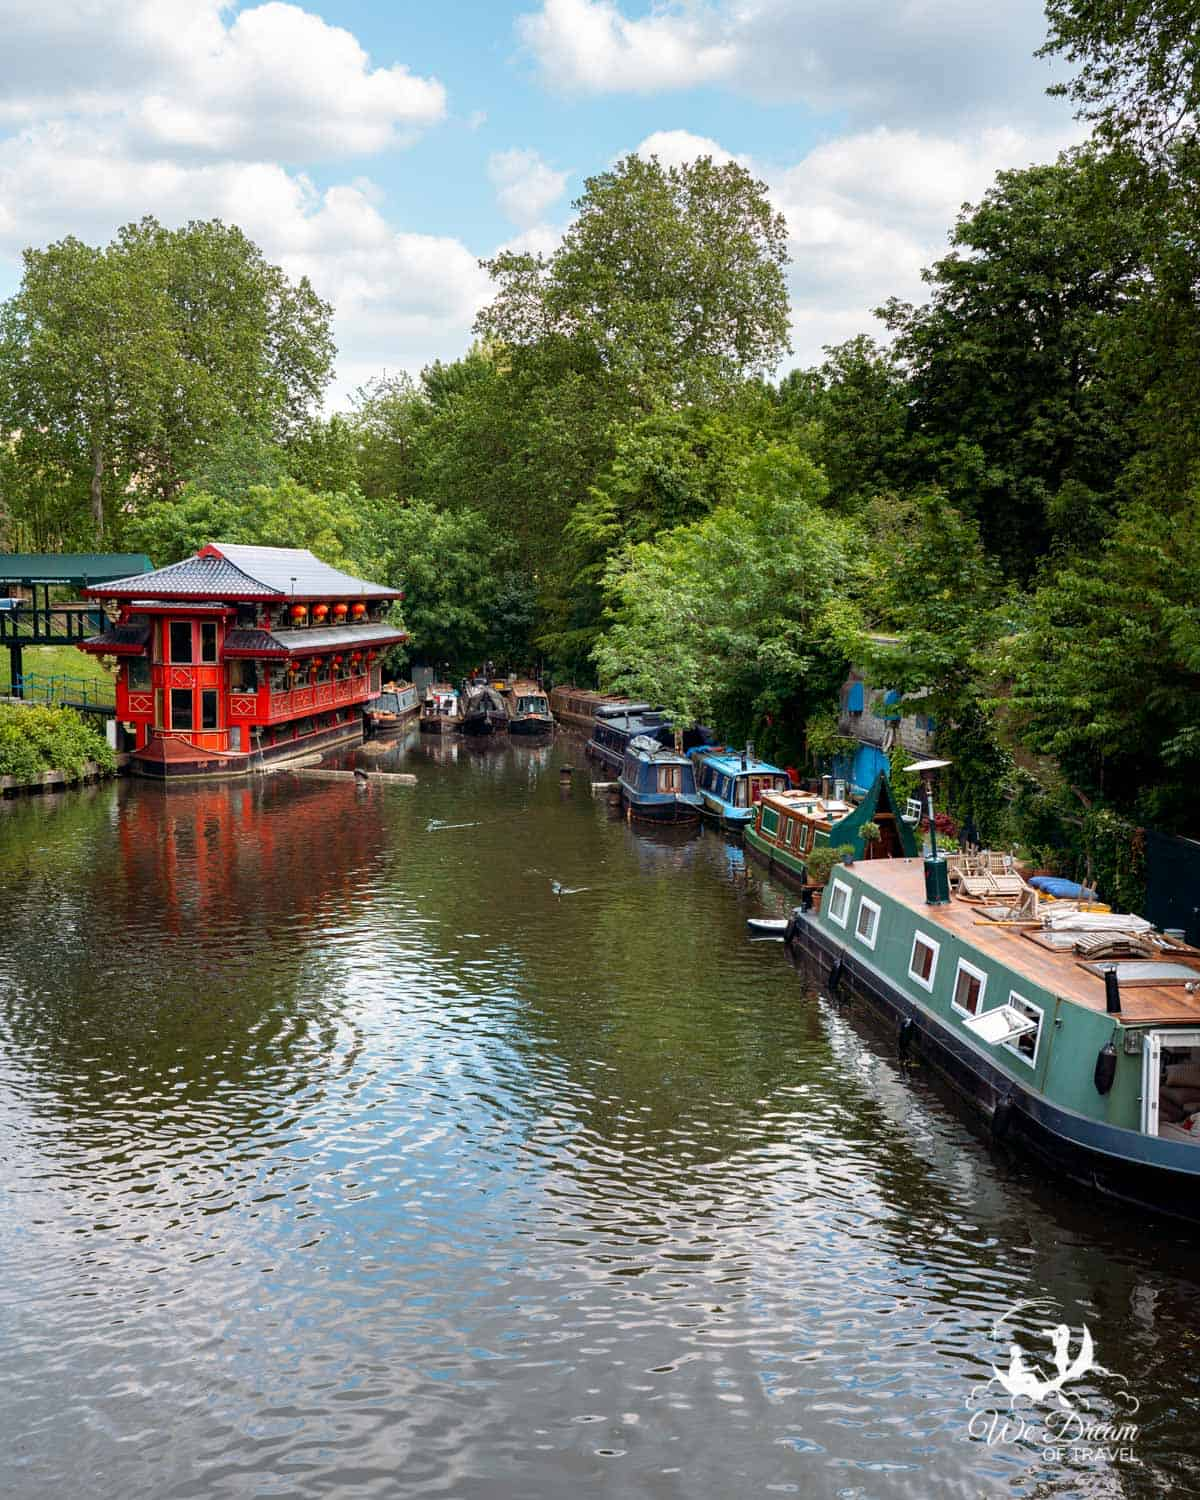 Feng Shang Princess Chinese restaurant on the left and narrowboats on the right along the Regent's Canal